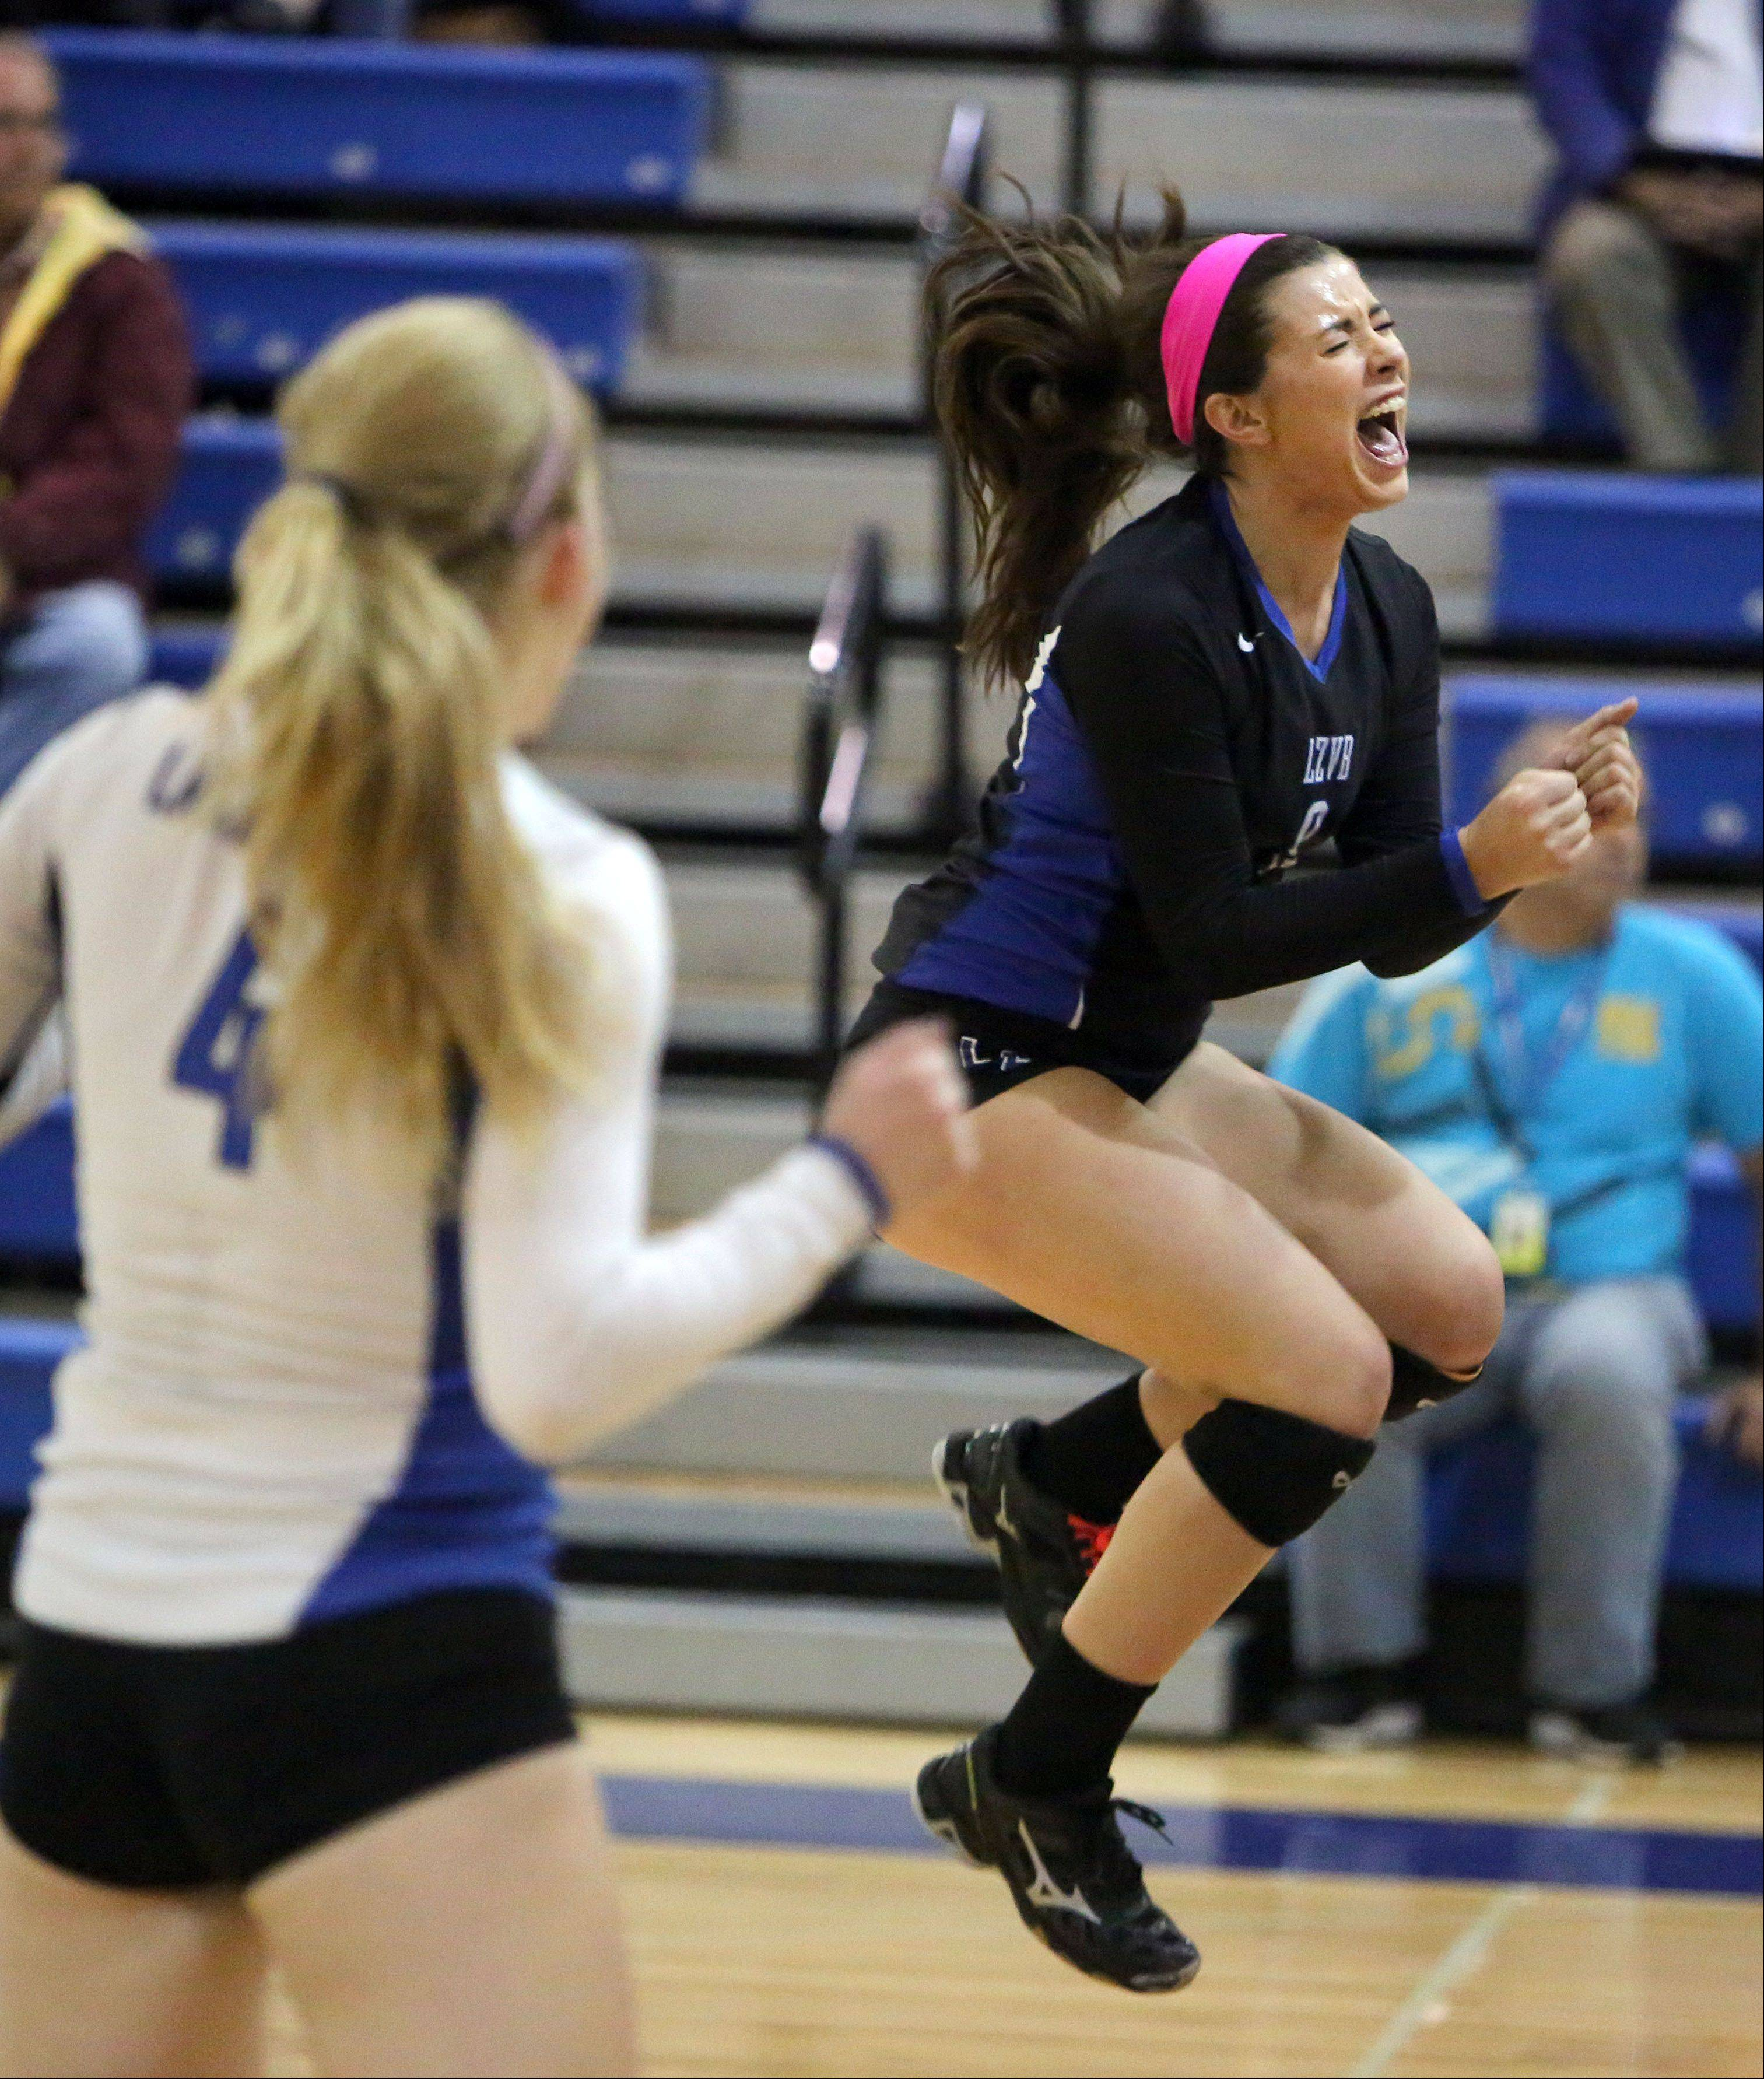 Lake Zurich's Ashley Dina celebrates after winning a point during the Bears' NSC title win over host Lakes on Wednesday night.